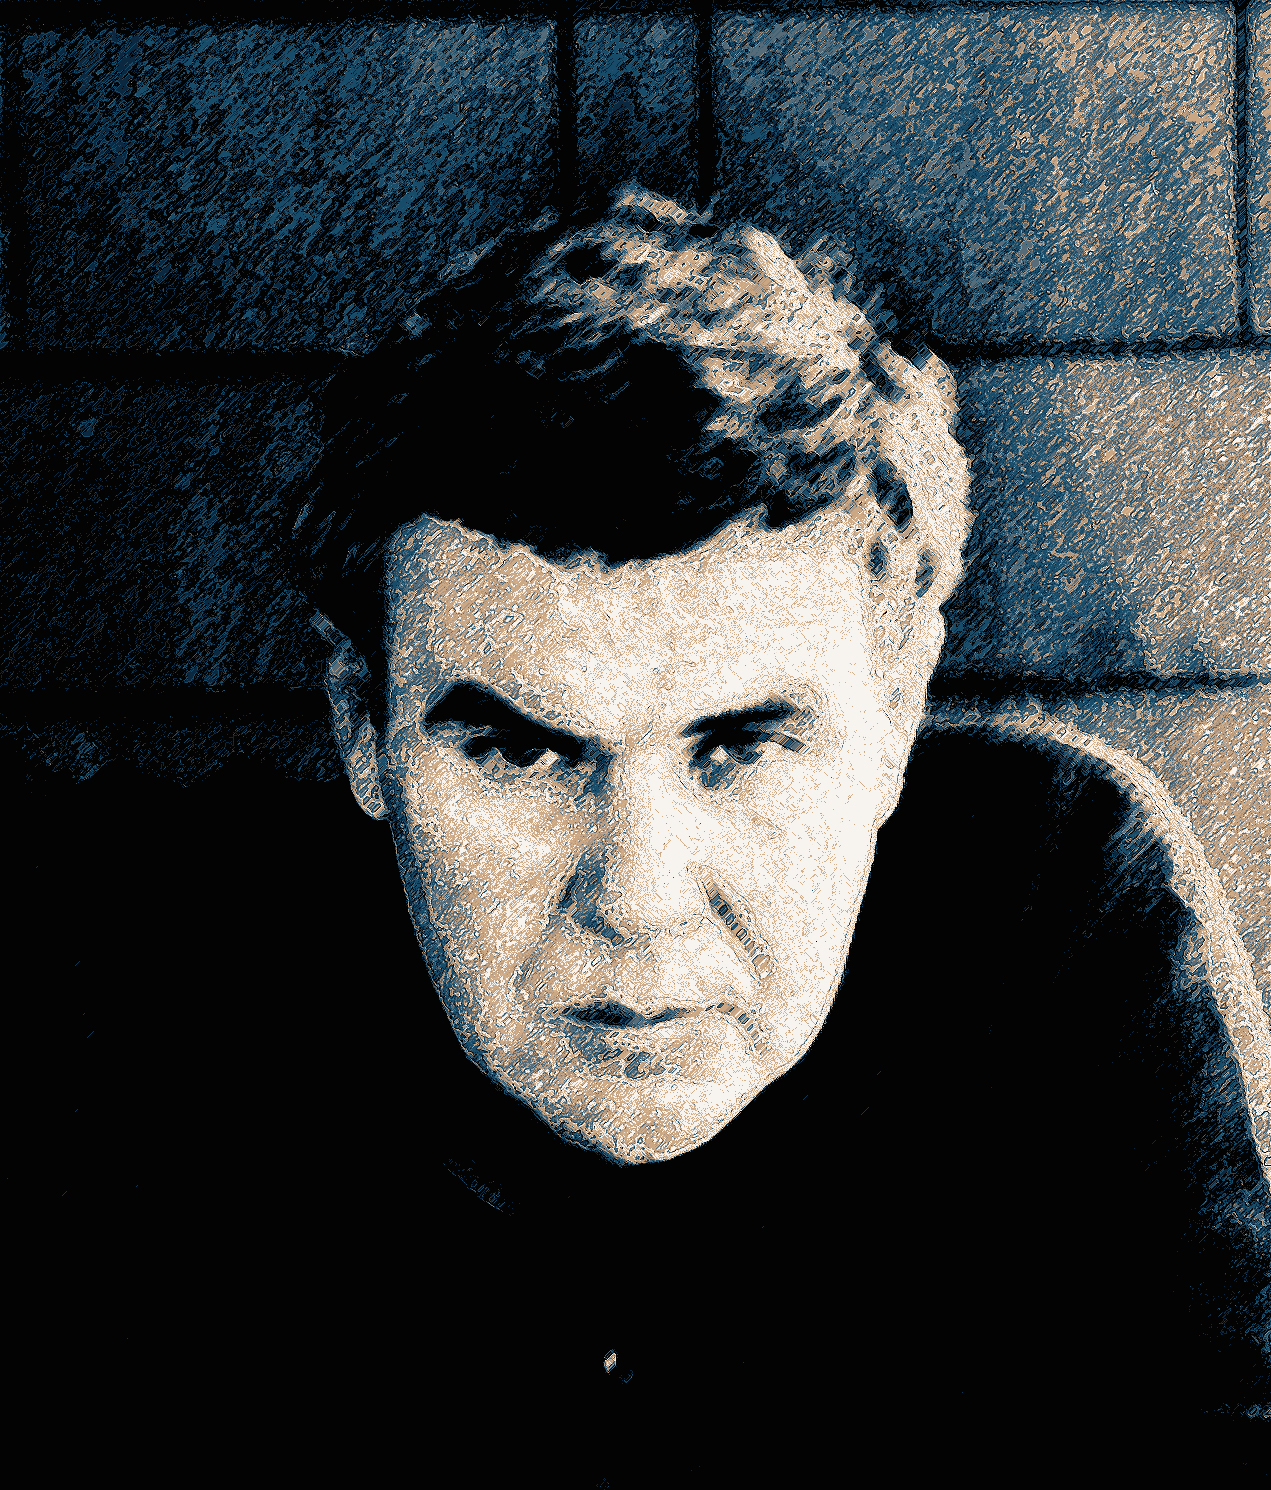 biographies ii raymond carver what we talk about when we talk raymond carver poster by t a